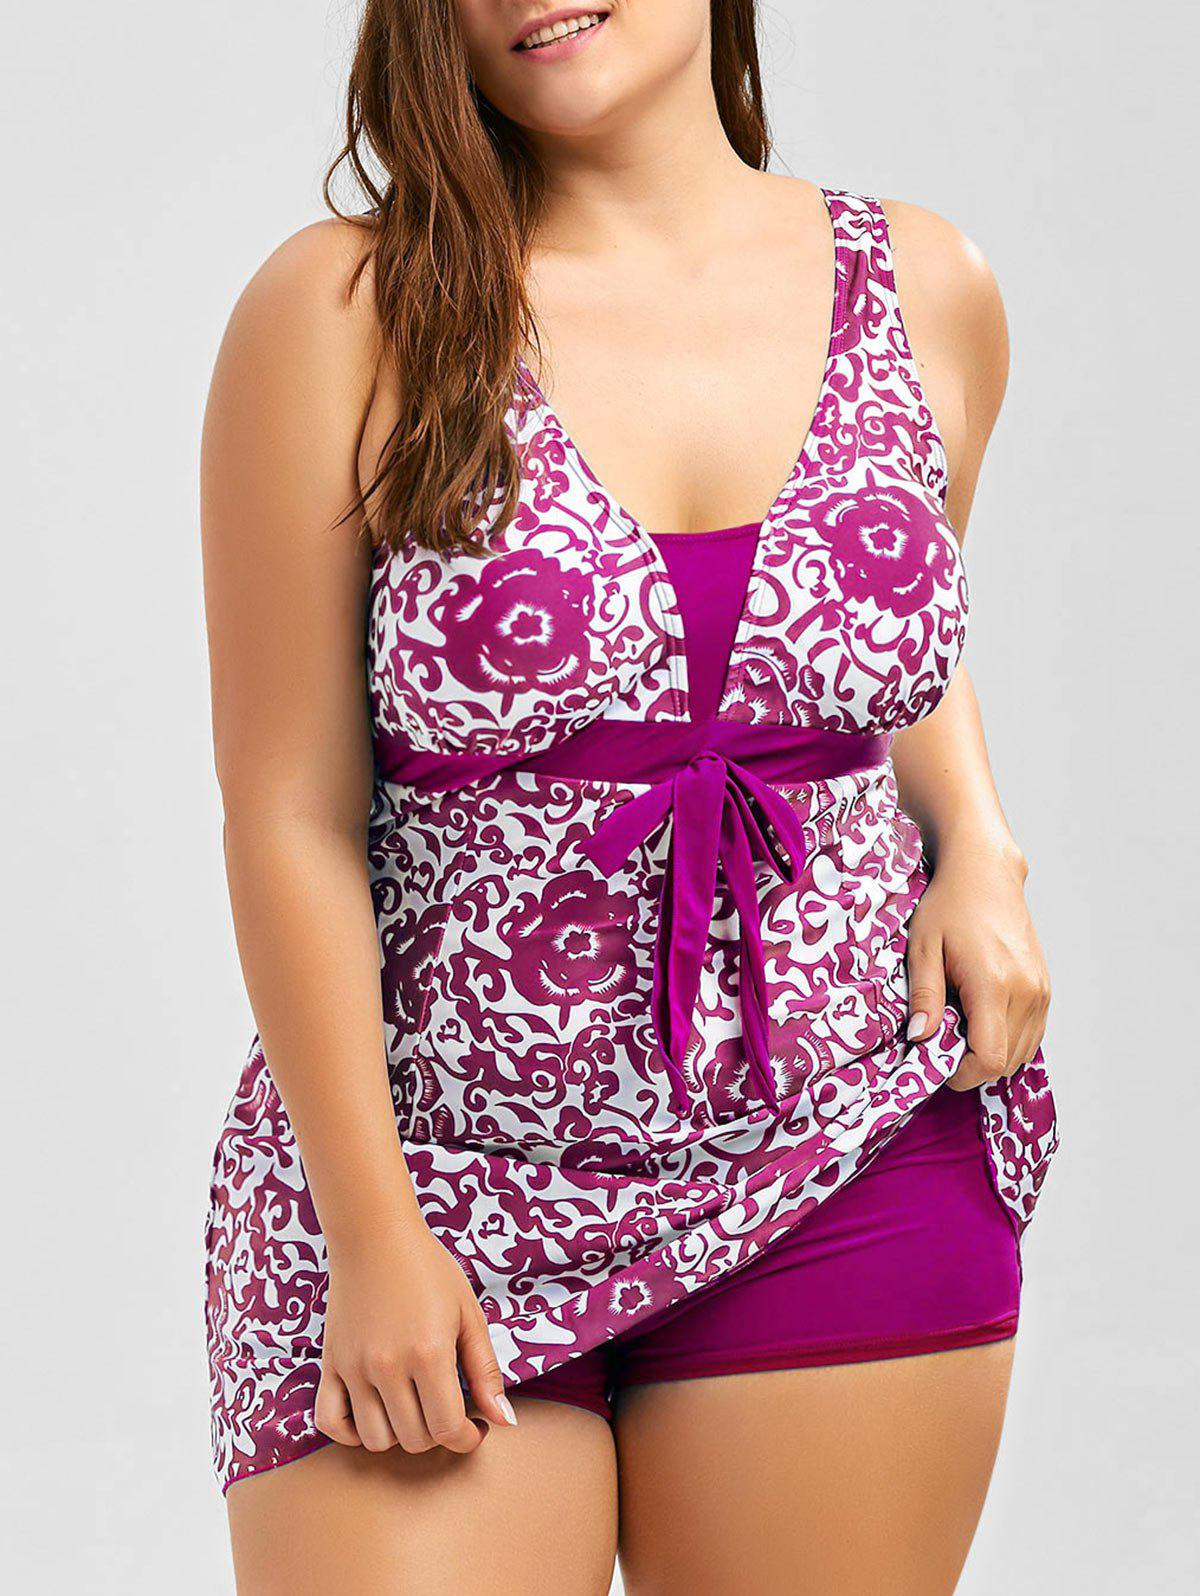 Discount Paisley and Floral Skirted Plus Size Swimsuit